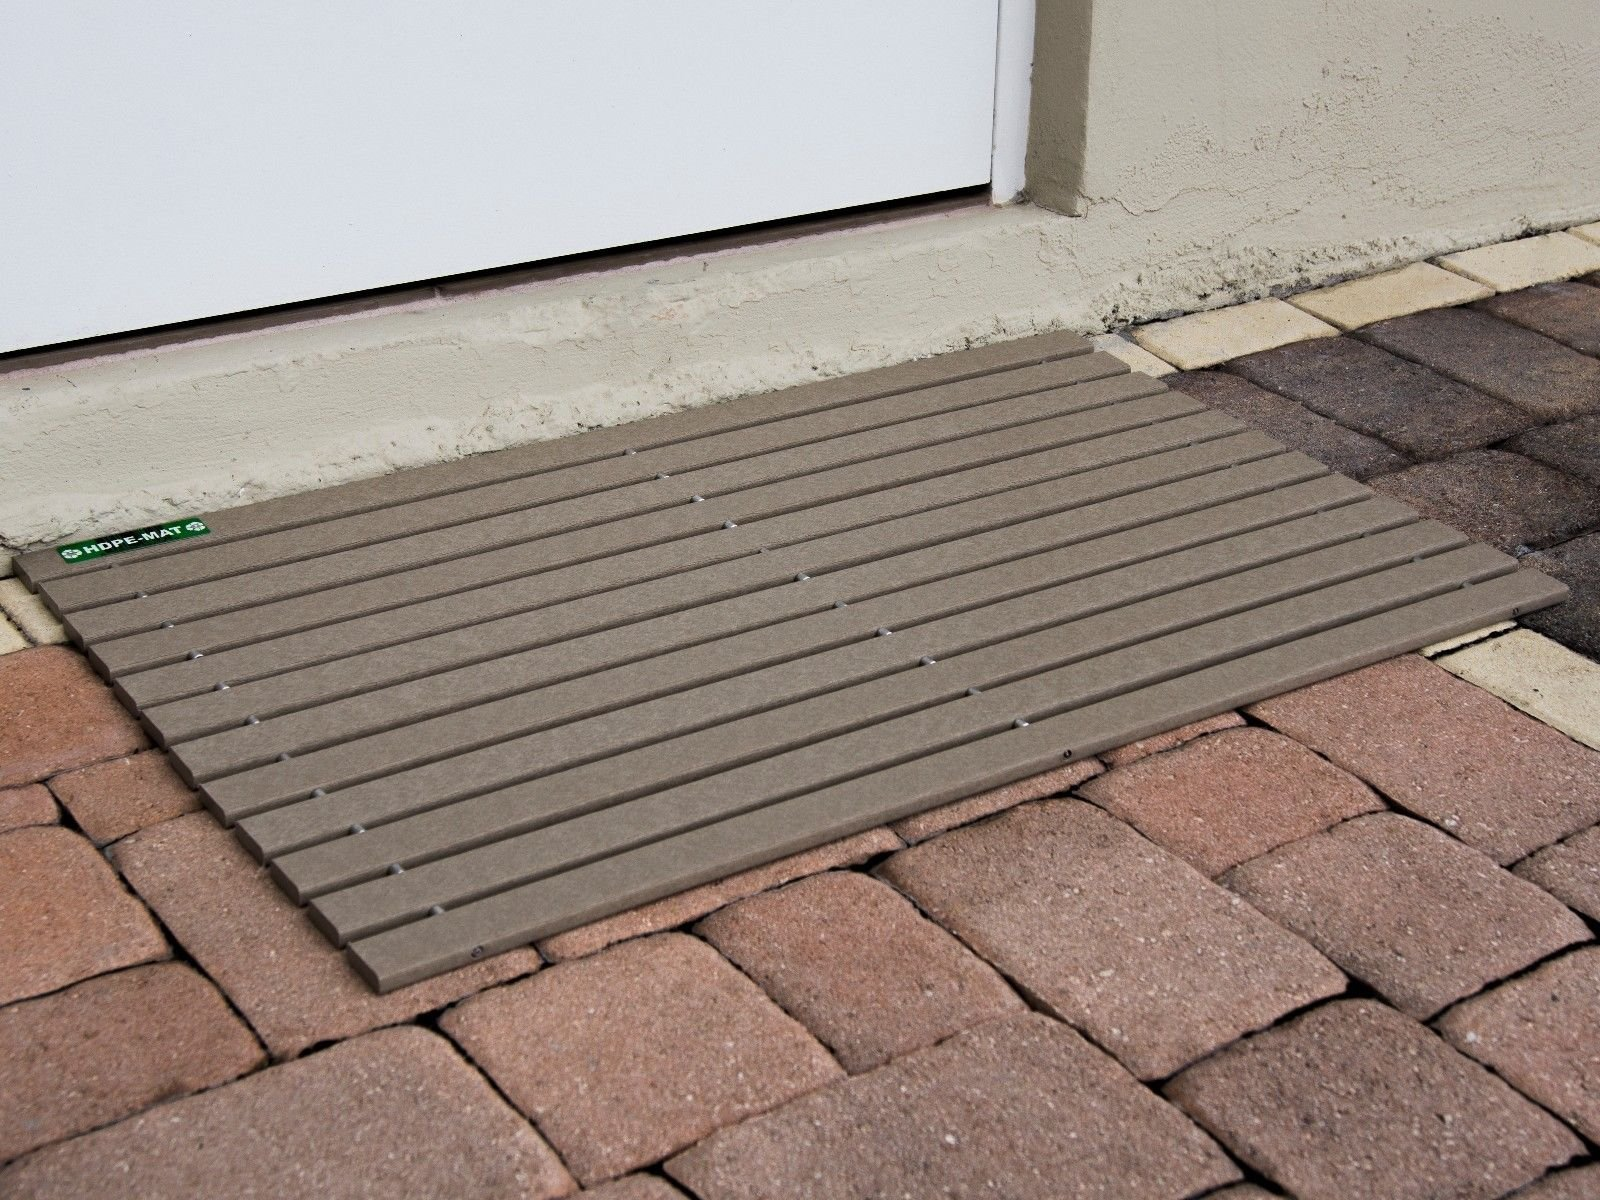 HDPE-MAT UV Resistant Heavy Duty Waterproof Front Door Mat | Stylish Handcrafted Recycled Plastic Poly Lumber Slats - Eco Friendly For Outdoor Entrance Patio Garage Entry